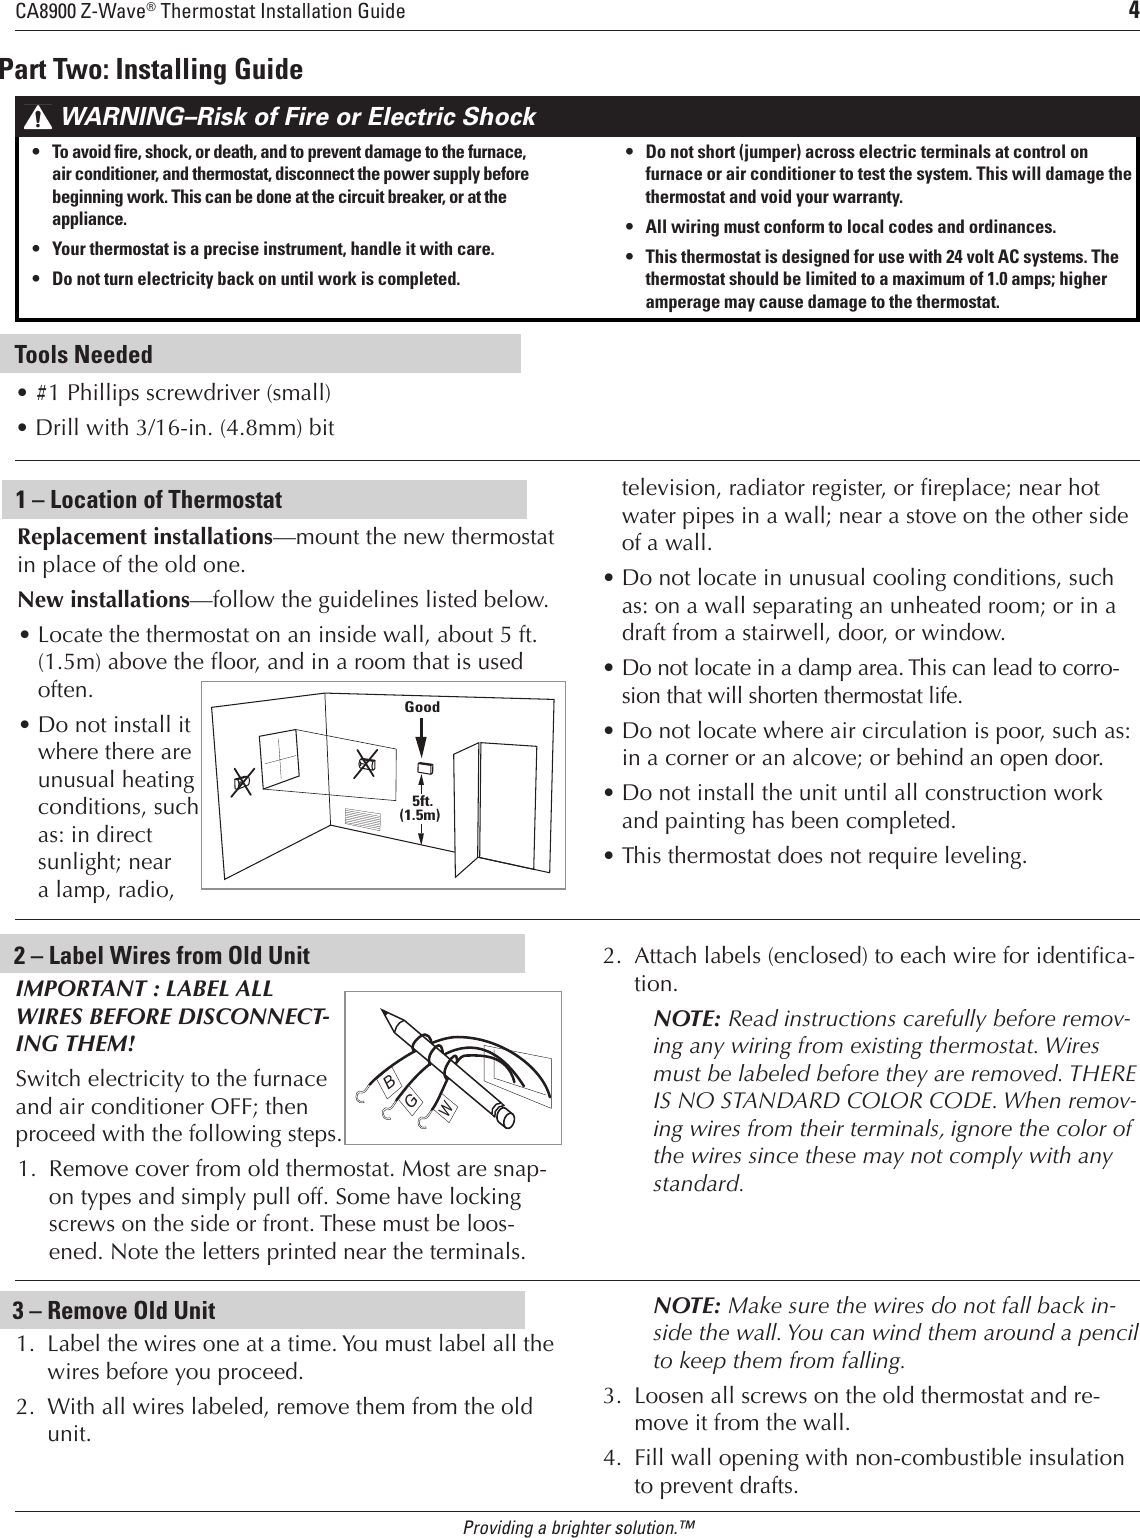 Trane Ca8900 Users Manual Thermostat Wiring Guide Page 4 Of 11